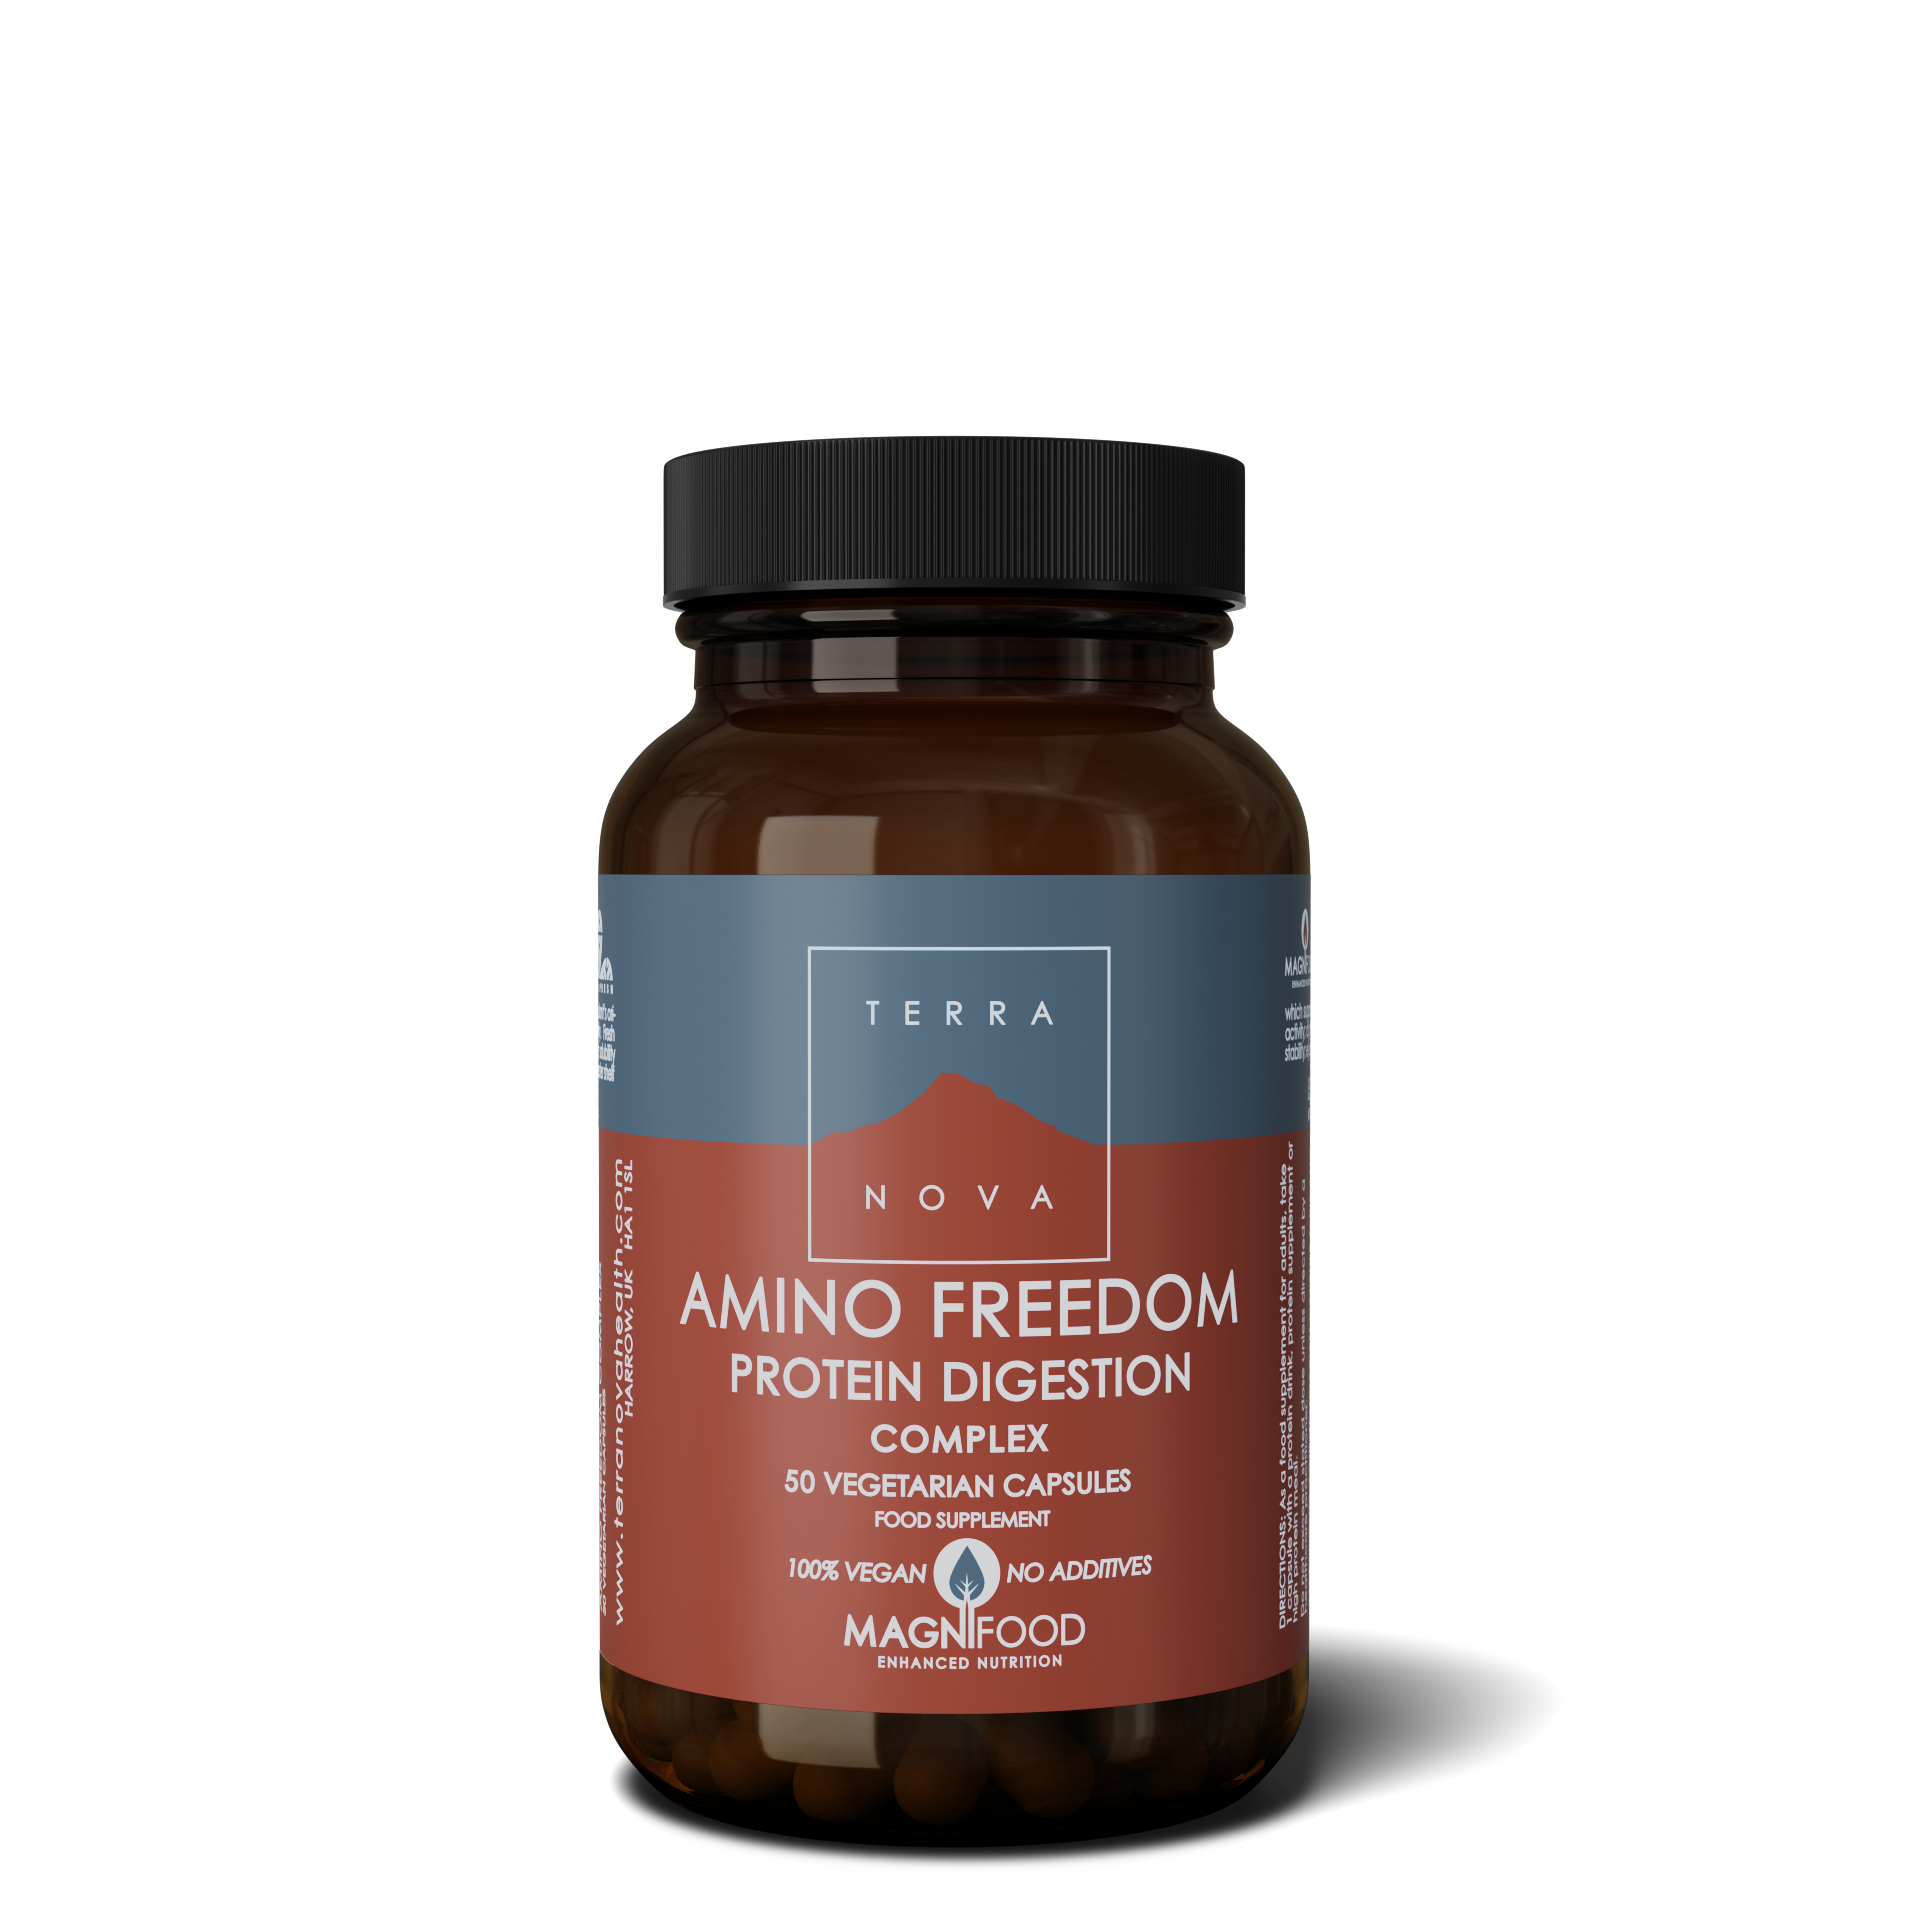 Amino Freedom Protein Digestion Complex 50's